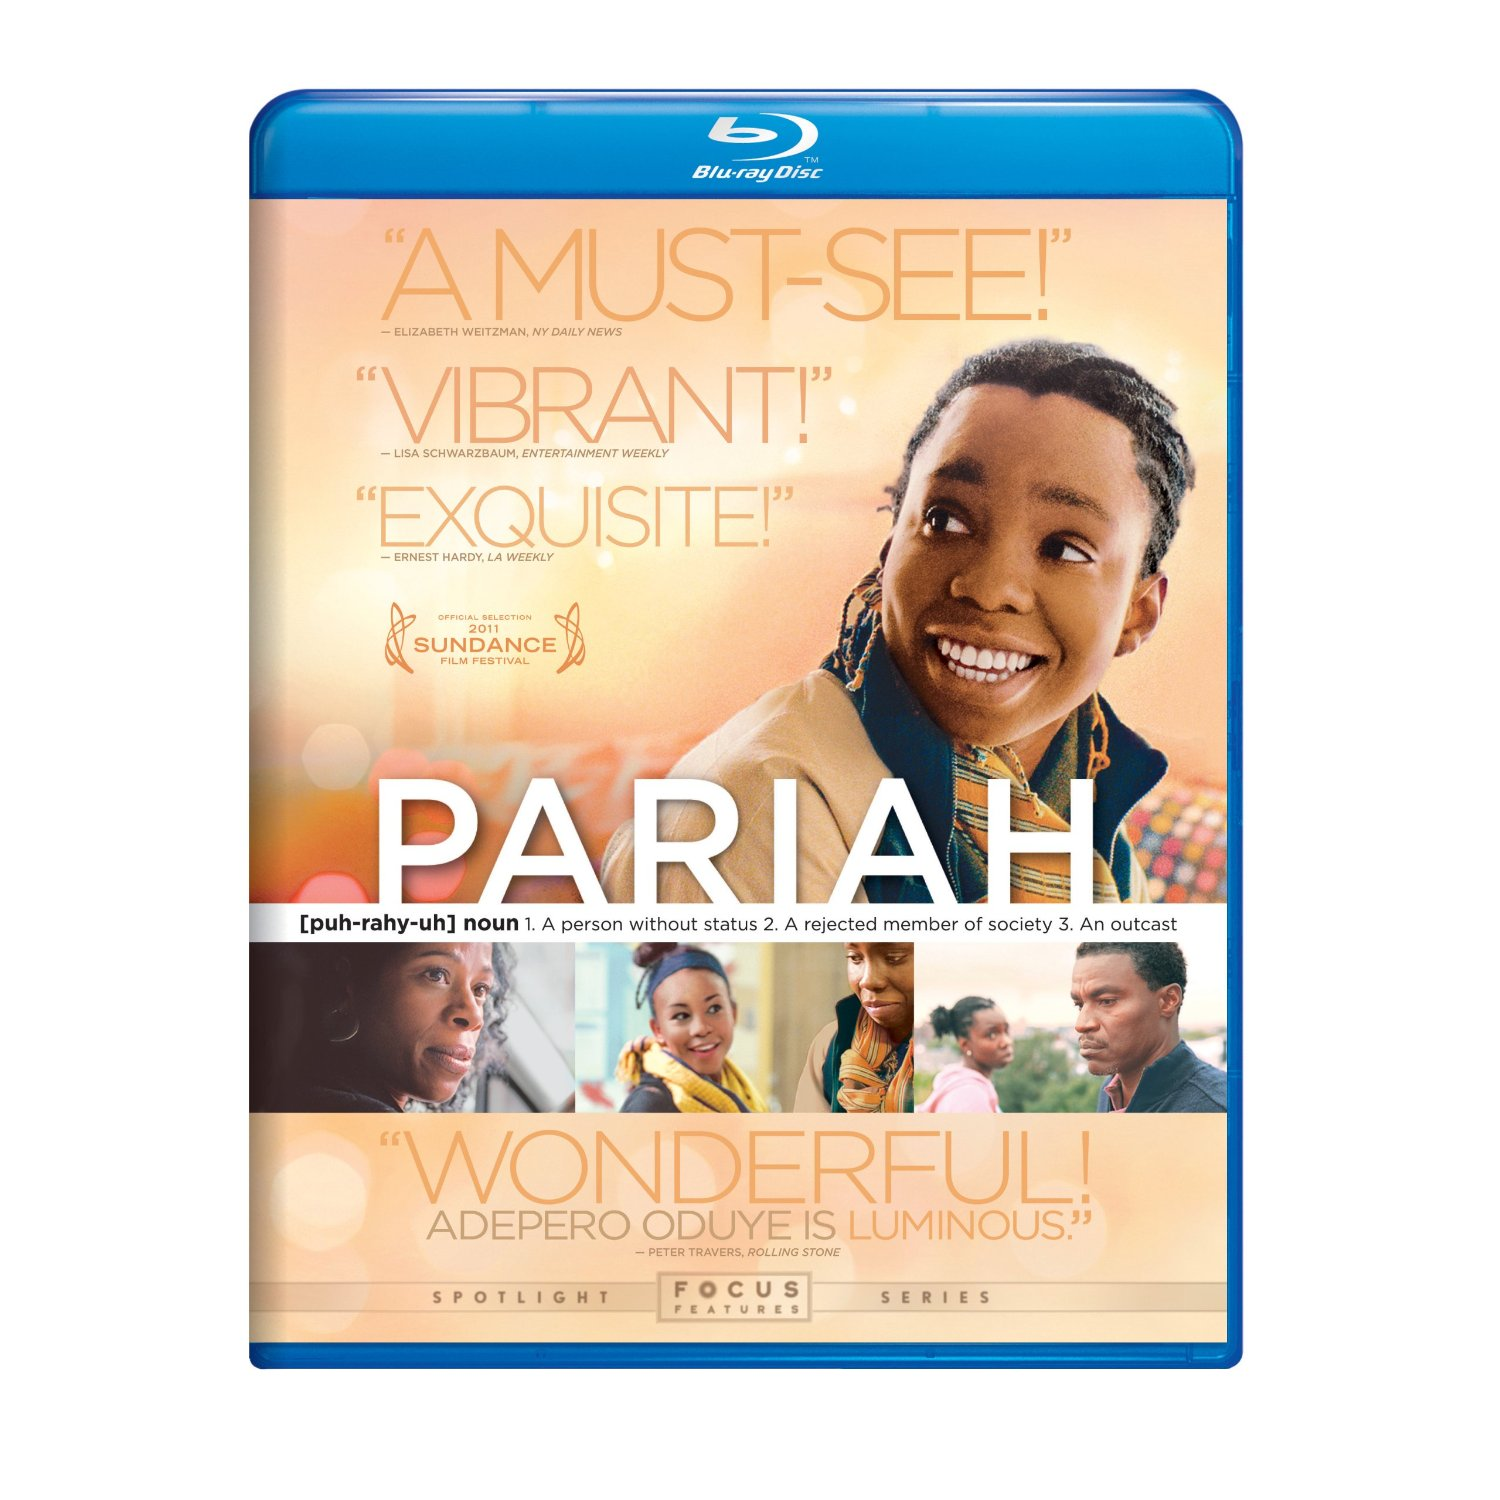 Disc Junkie: DVD and Blu-Ray Releases, April 24-30, 2012